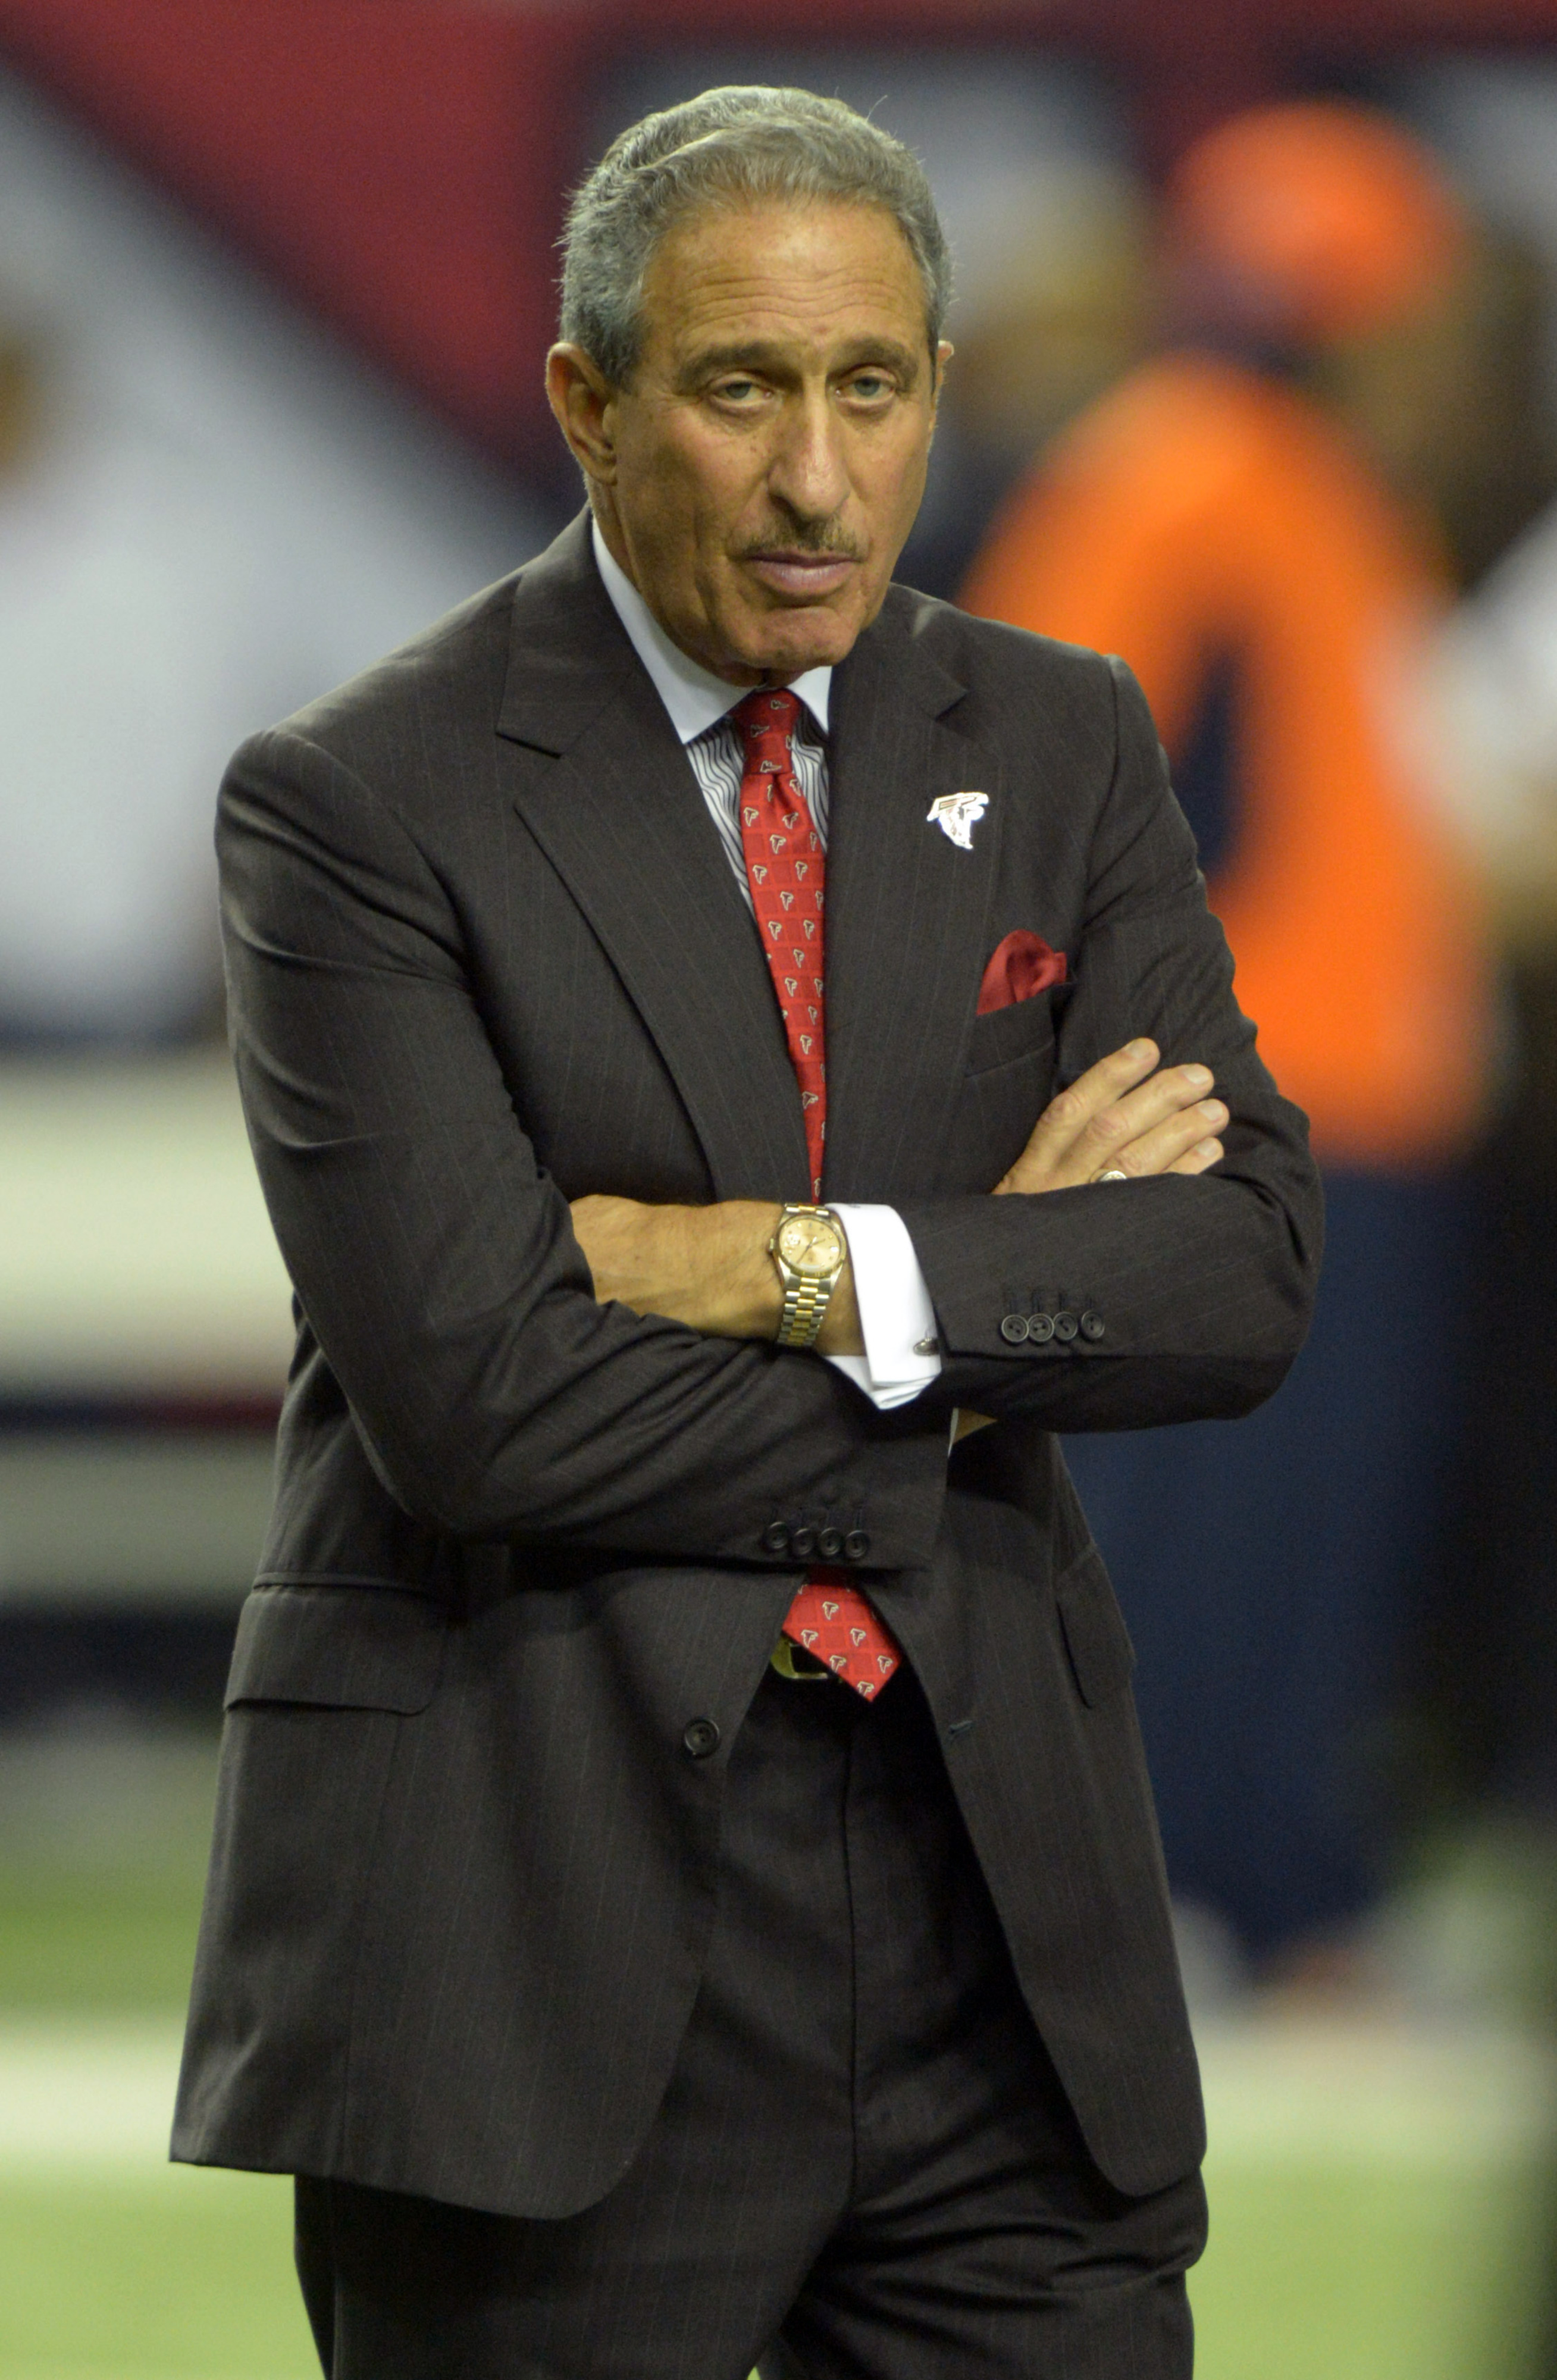 Sep 17, 2012; Atlanta, GA, USA; Atlanta Falcons owner Arthur Blank attends the game against the Denver Broncos at the Georgia Dome. The Falcons defeated the Broncos 27-21. Mandatory Credit: Kirby Lee/Image of Sport-US PRESSWIRE